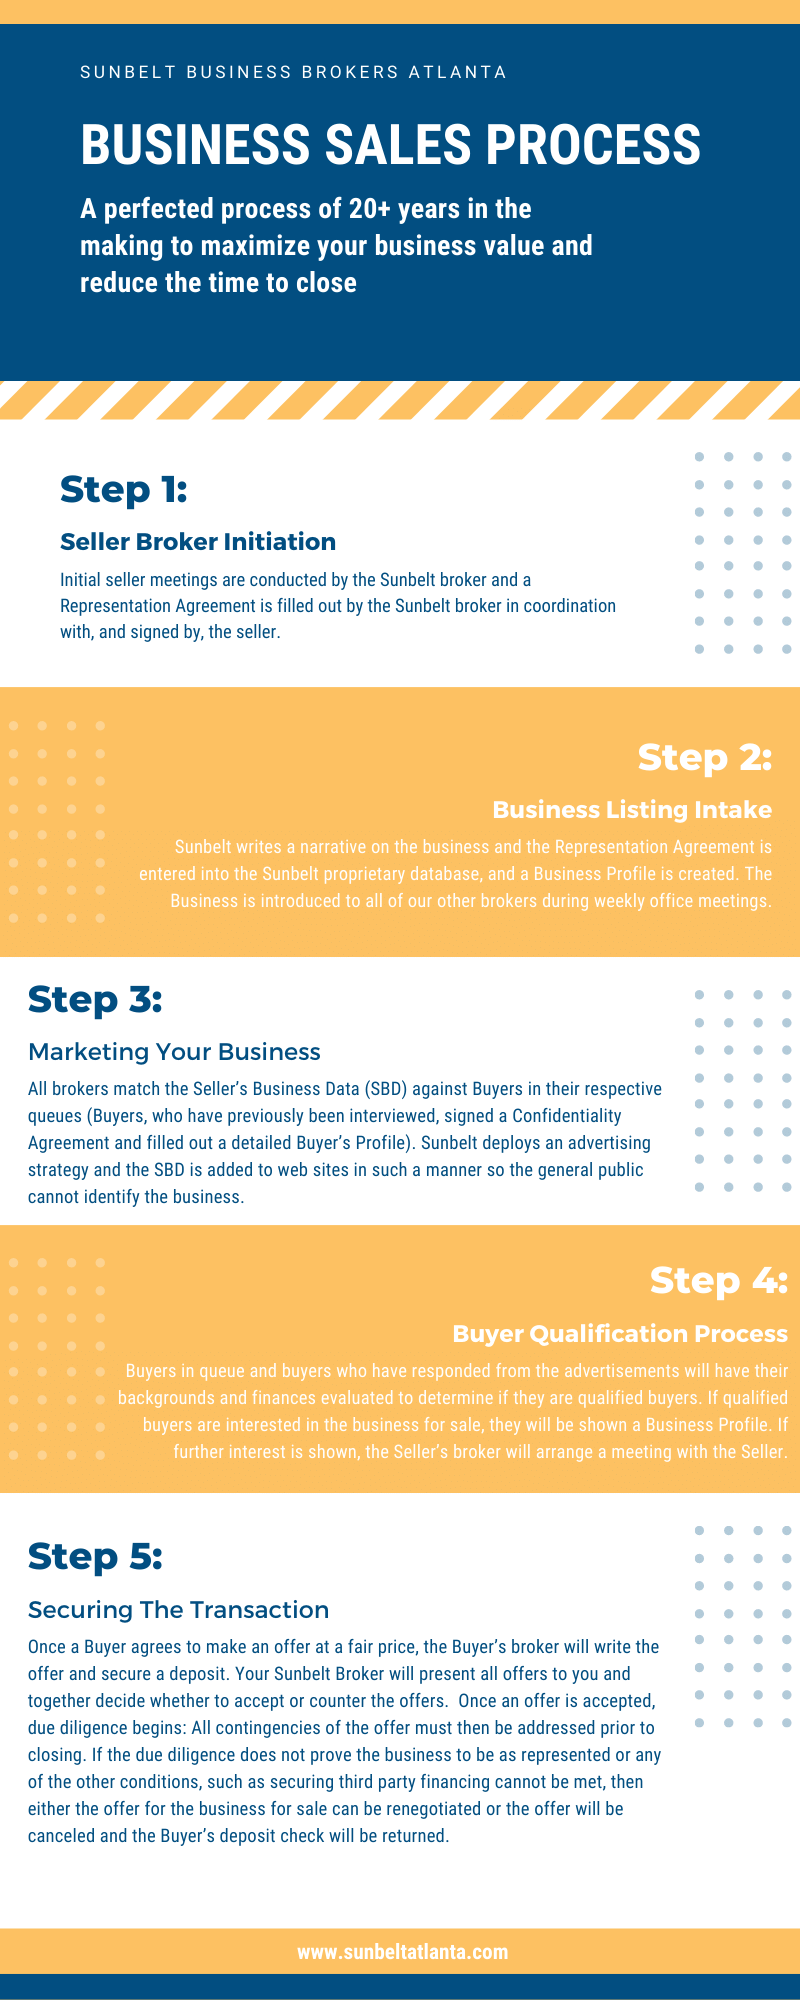 Business Sales Process Infographic